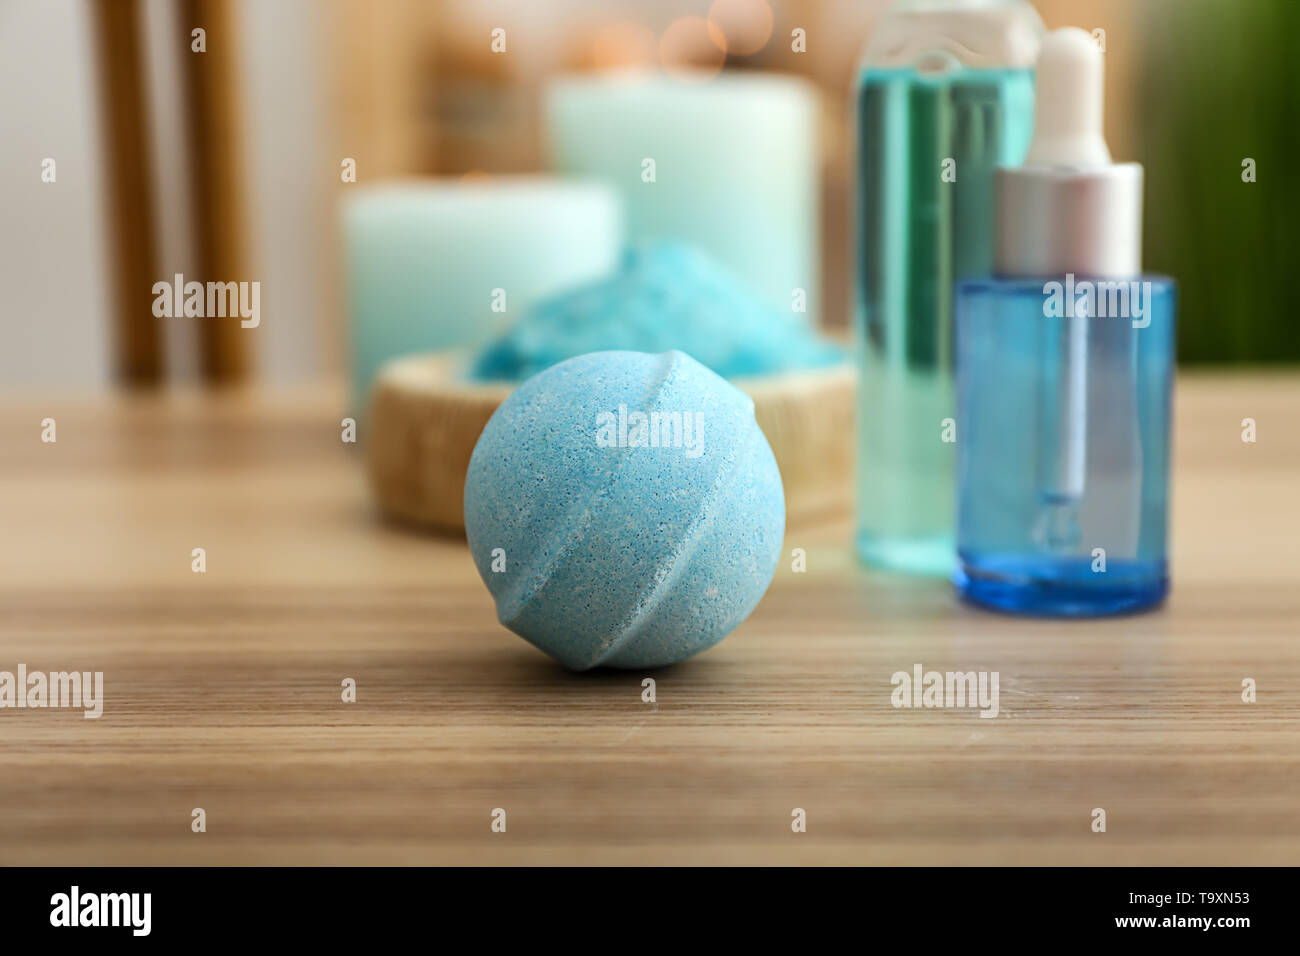 Bath bomb on wooden table - Stock Image